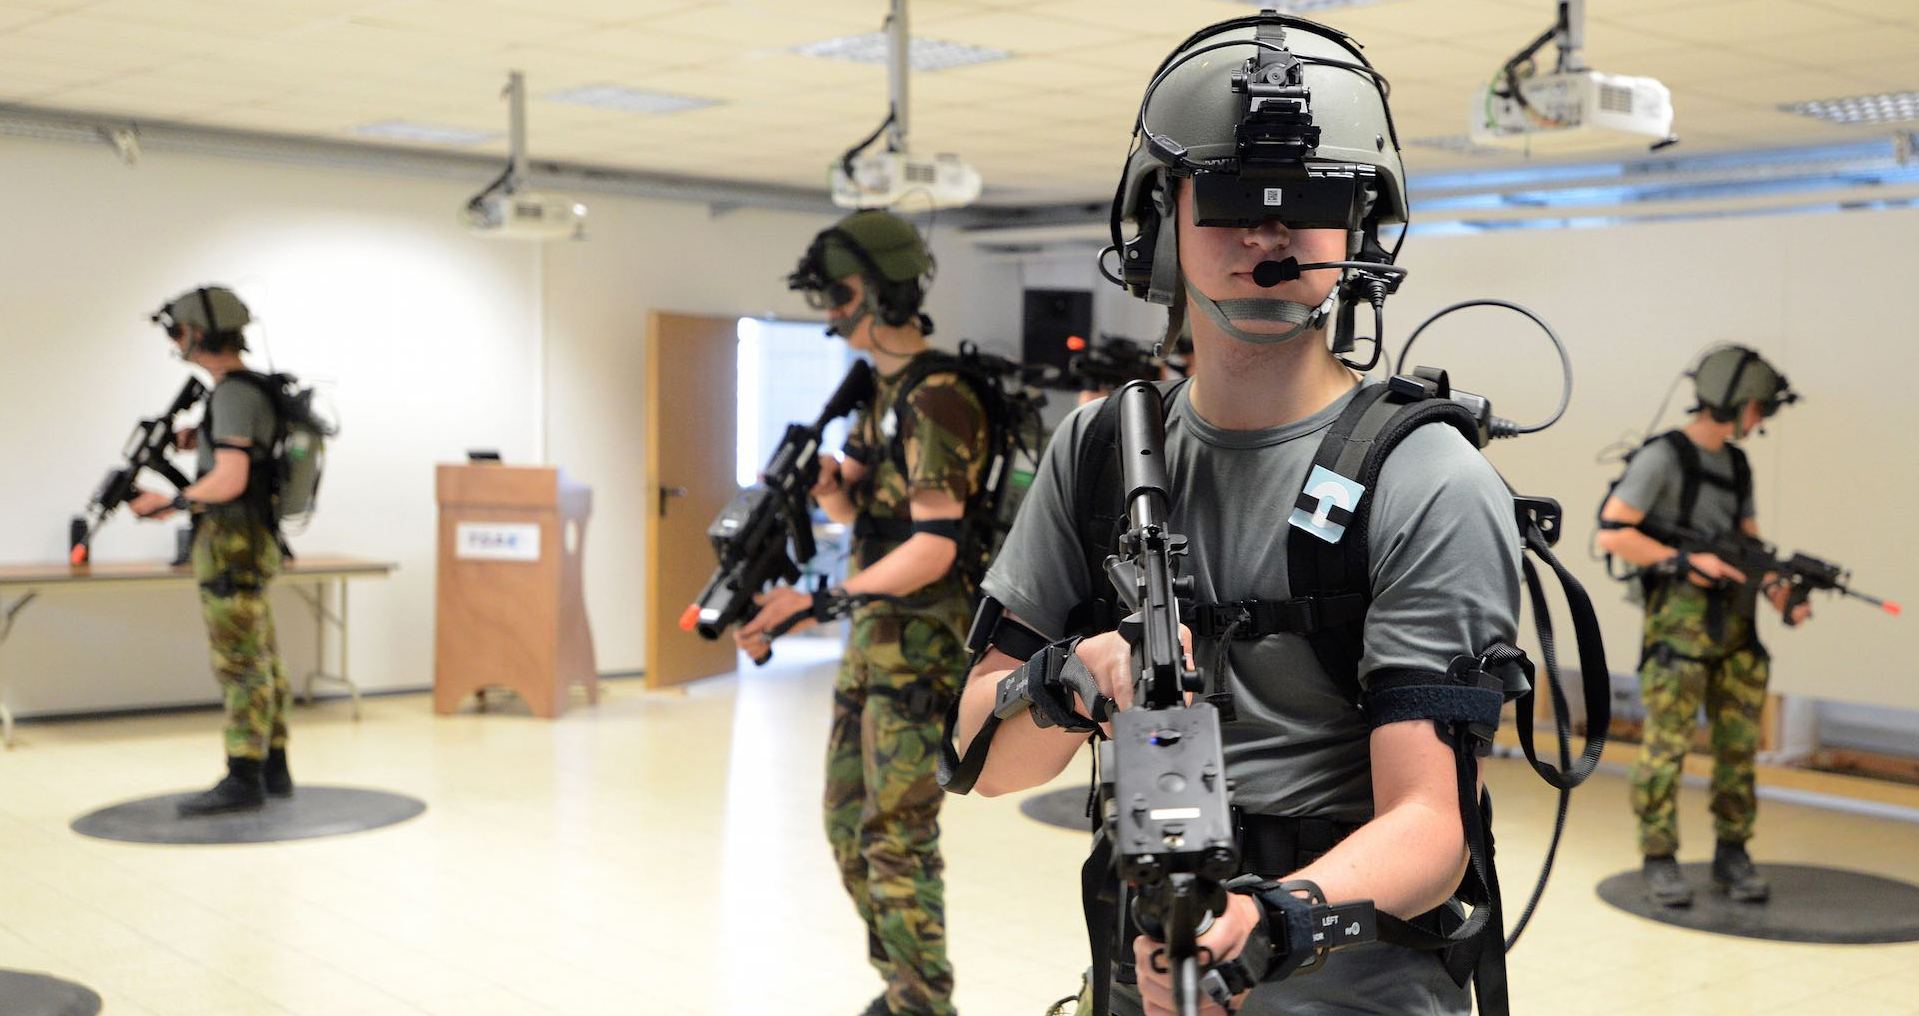 Soldiers using virtual reality training to simulate difficult combat situations.